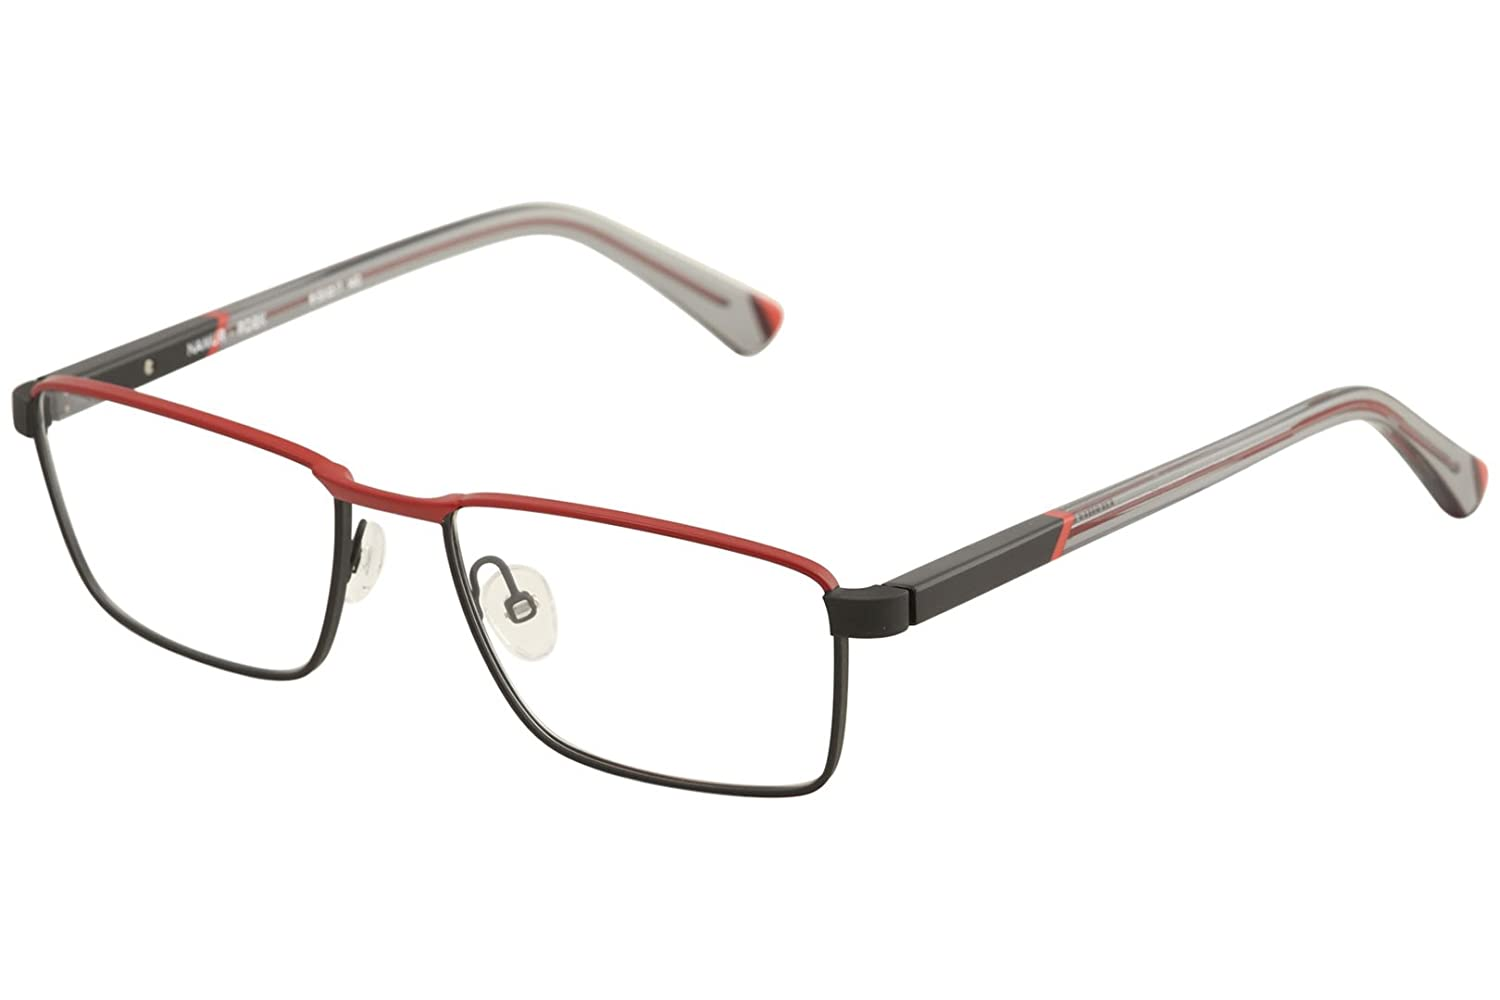 fa2283f0f1 Amazon.com  Etnia Barcelona Men s Eyeglasses Namur RDBK Red Black Optical  Frame 55mm  Clothing